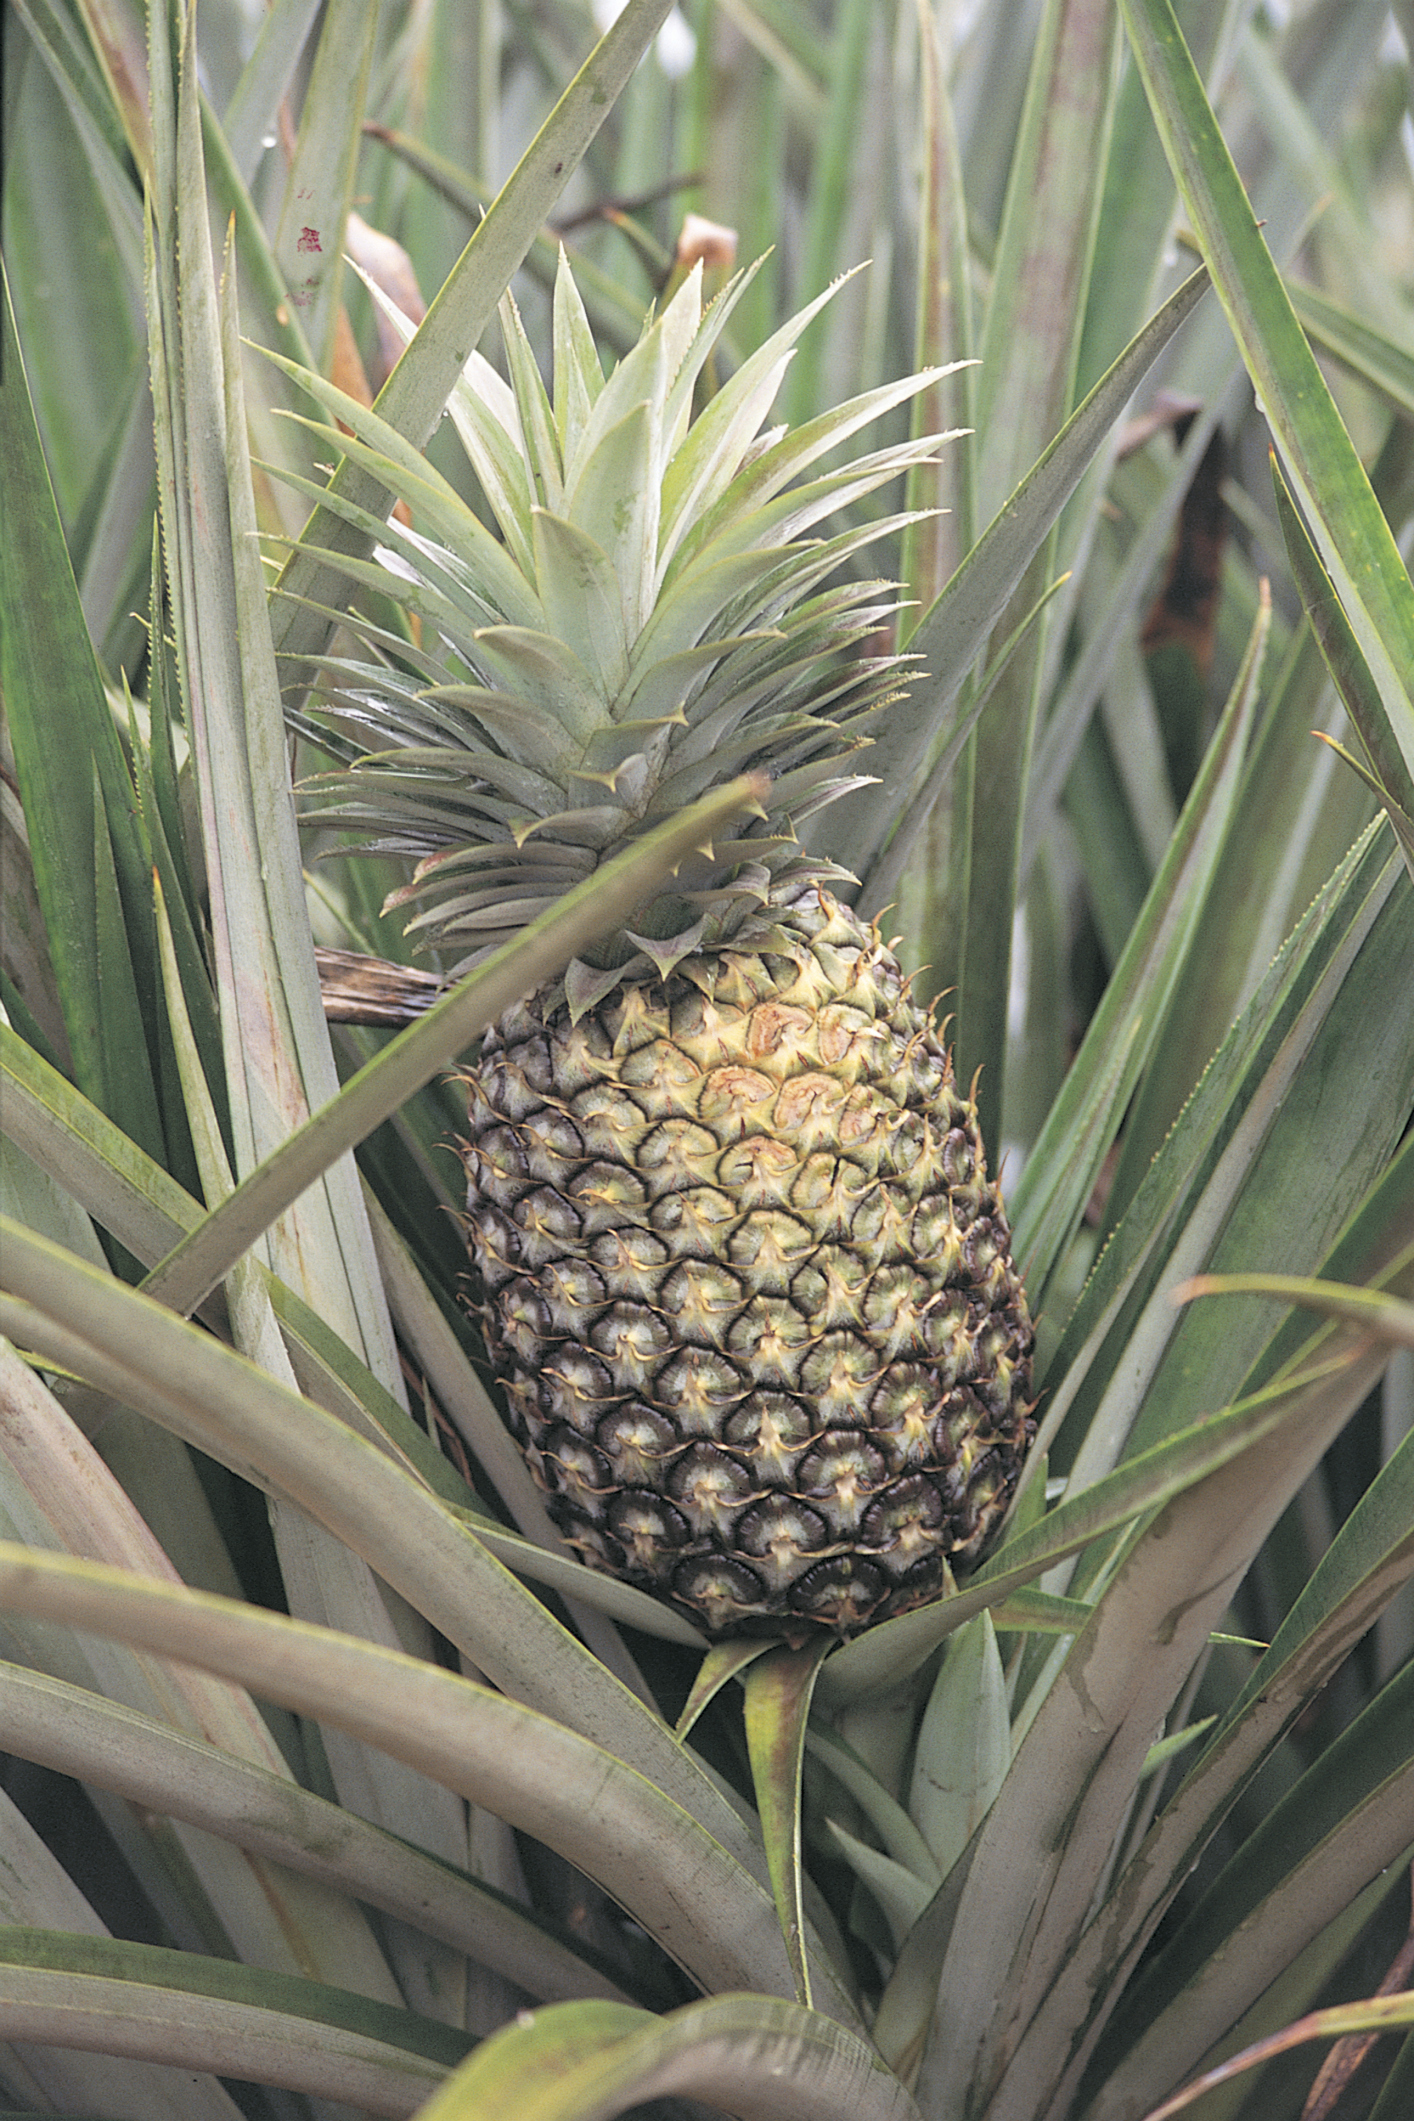 How to determine the ripeness of pineapple